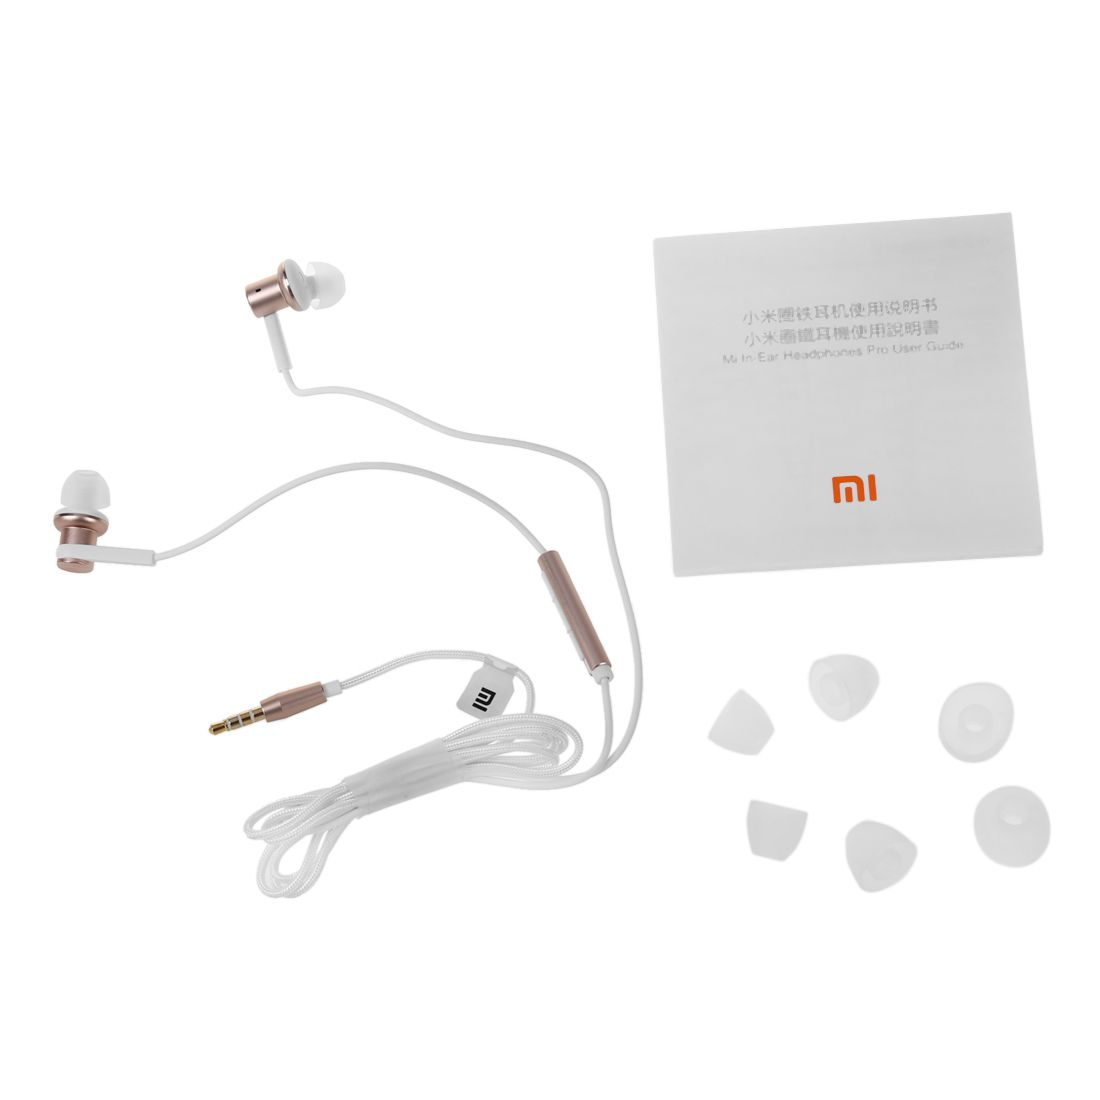 Newest Original Xiaomi Hybrid Pro HD Earphone with Mic Remote Headset for Xiaomi Redmi Red Mi Mobile Phone In-Ear